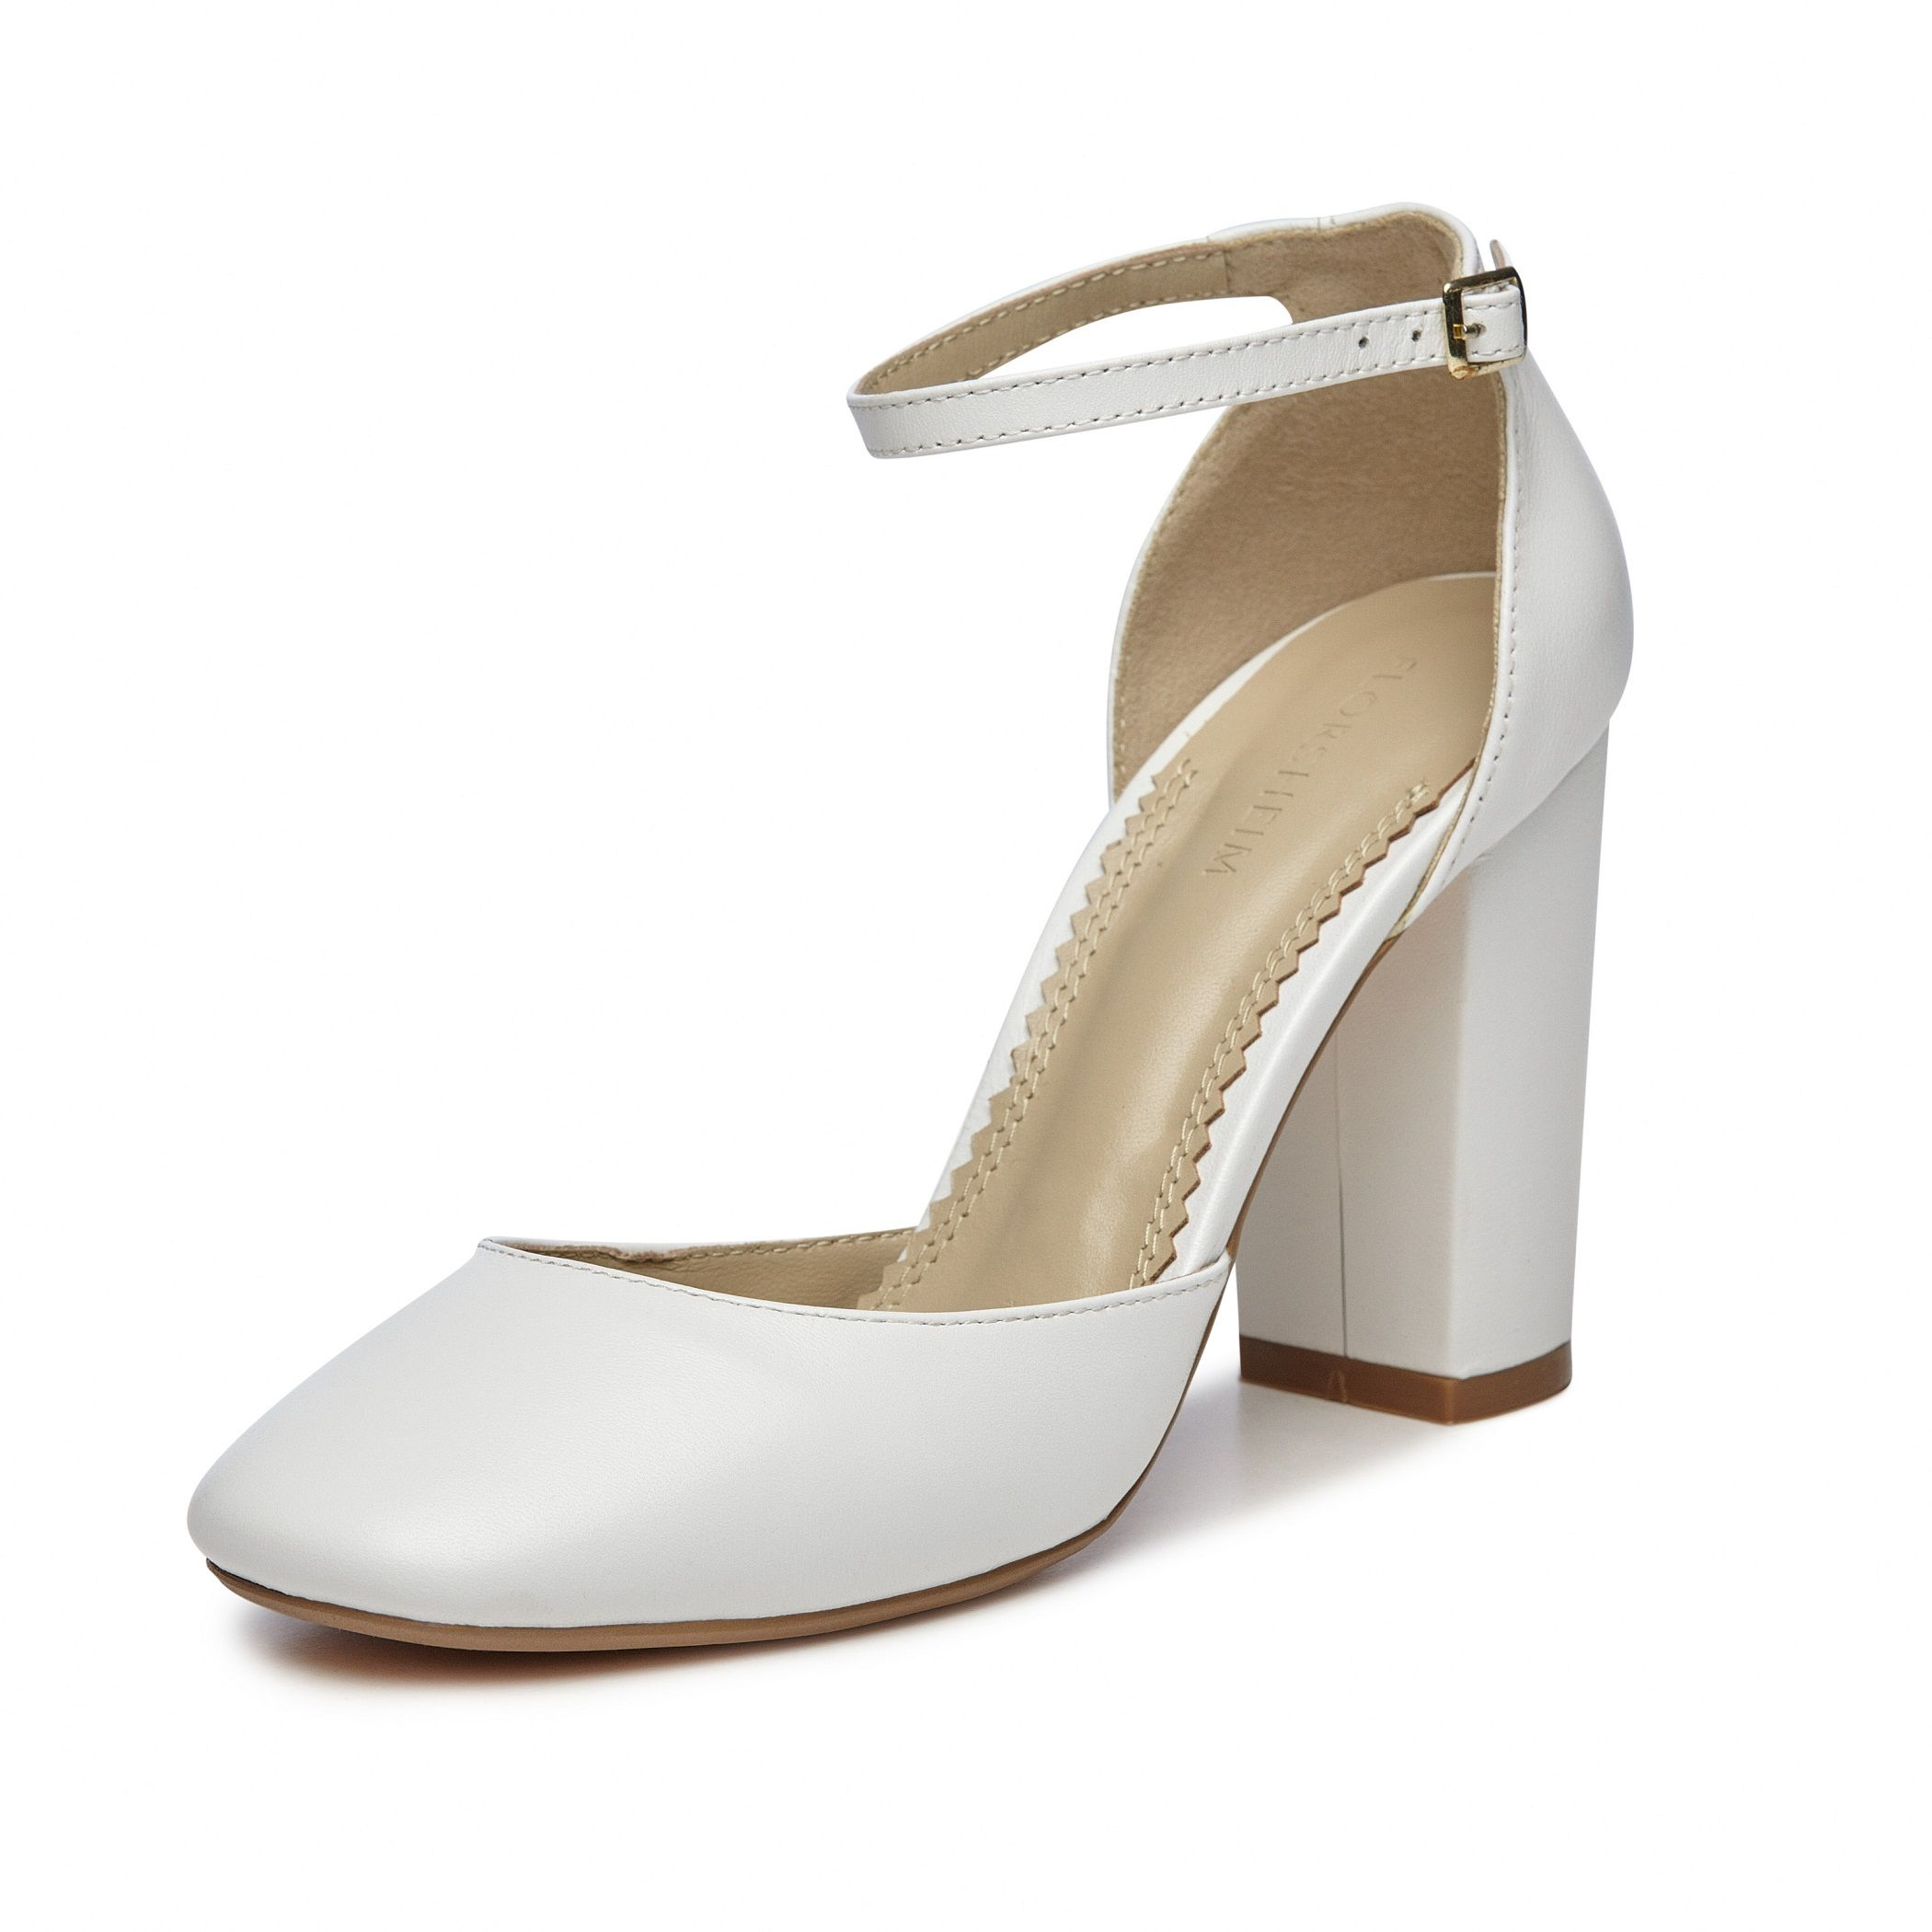 Lario is a kid leather closed toe pump with a block heel and fine